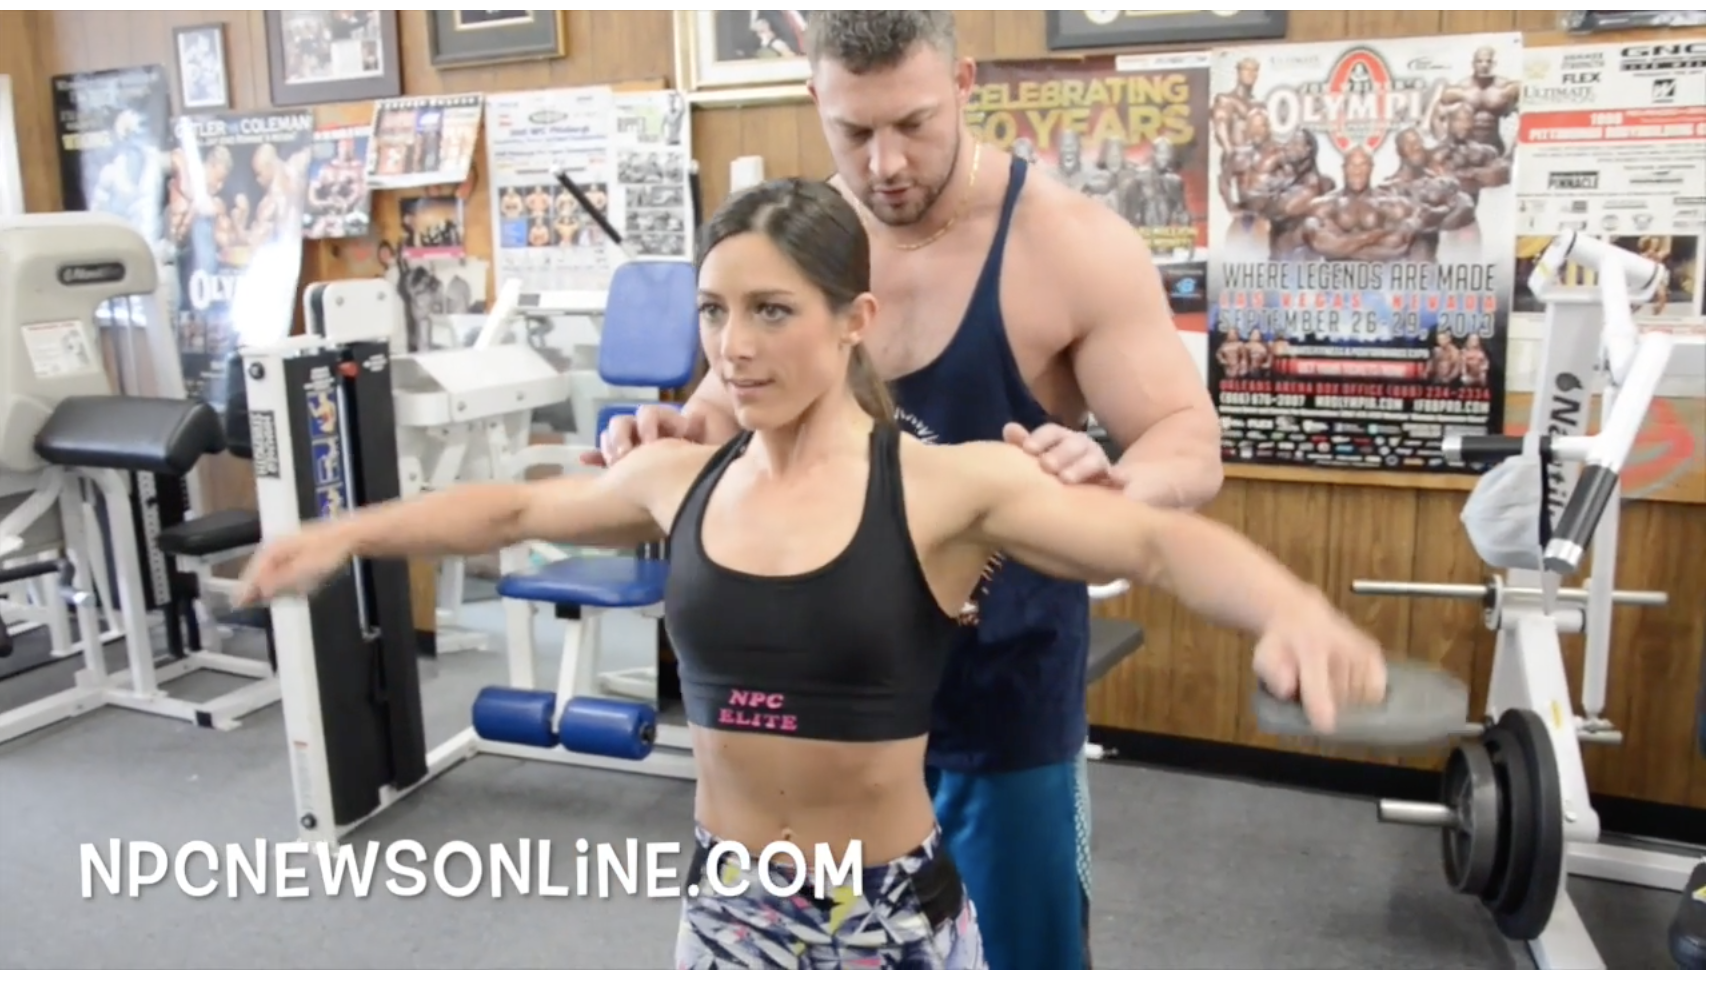 IFBB Fitness Pro Sara Kovach Shoulder Workout With Bill Sienerth.